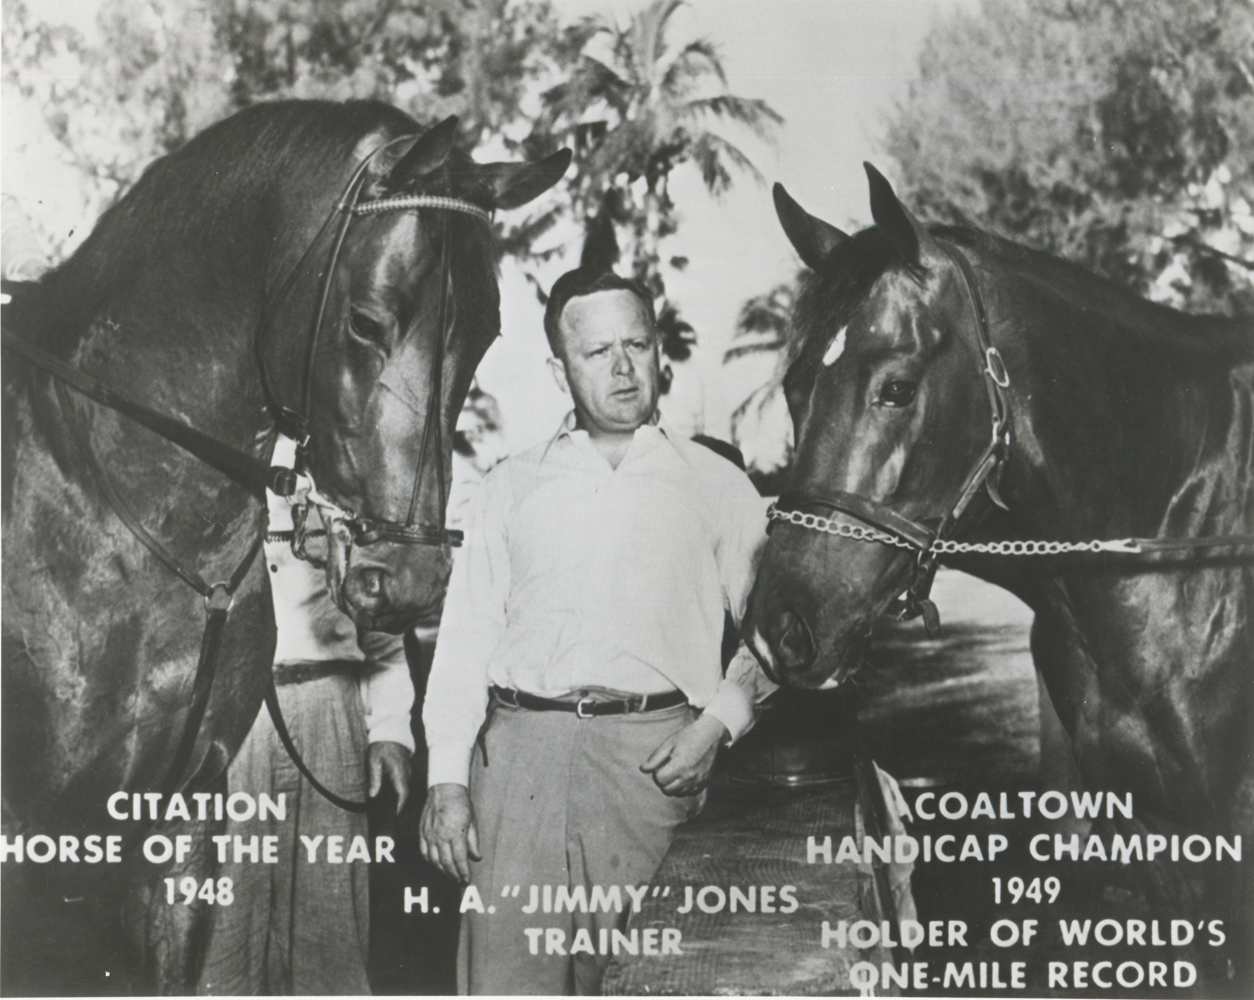 Coaltown (right) with Calumet Farm stablemate Citation and trainer Jimmy Jones (Museum Collection)